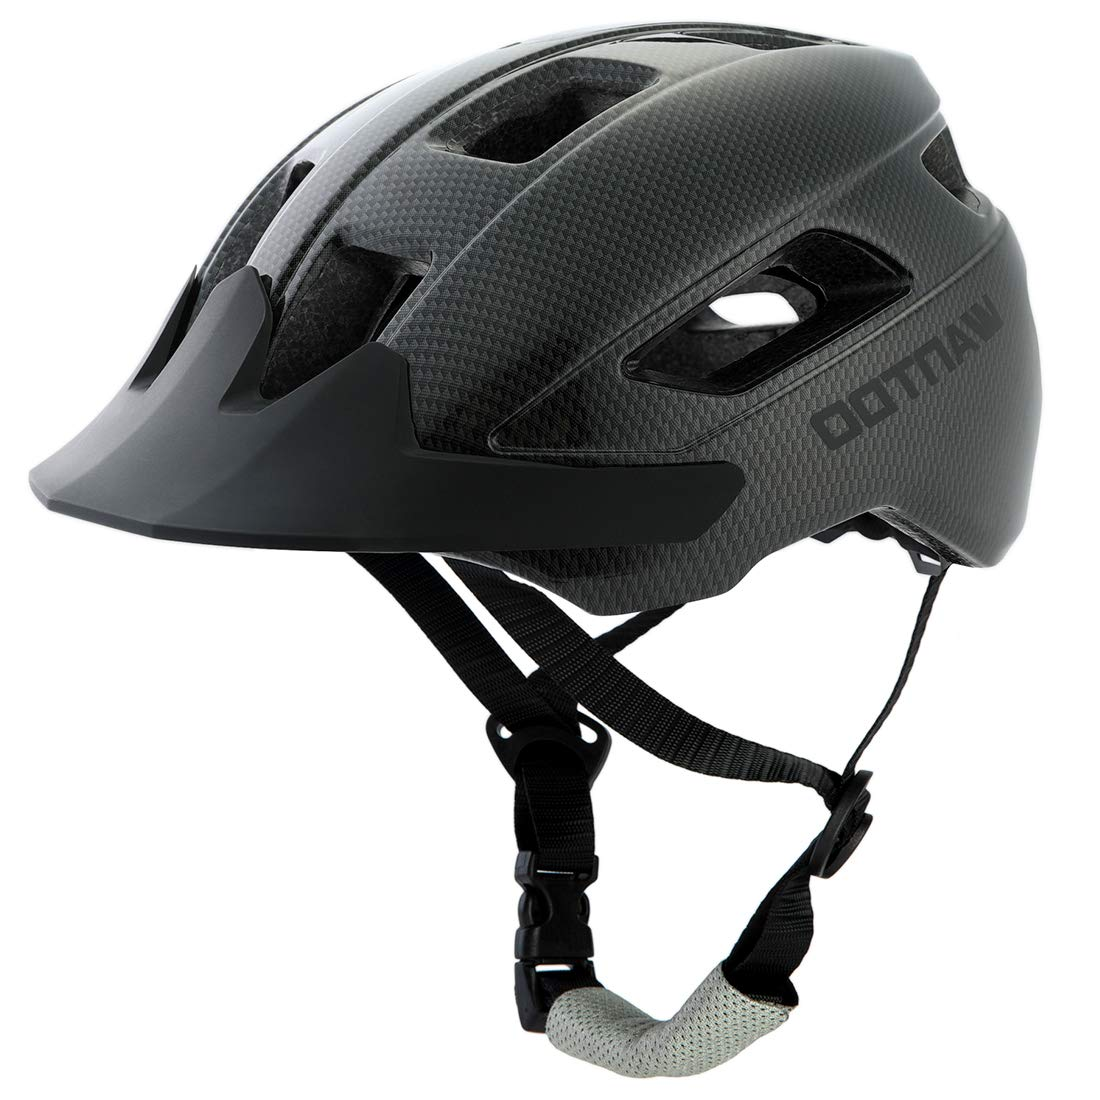 Wantdo Specialized Bike Helmet Safety Bicycle Helmet with Removable Visor Adjustable and Multi-Sports Helmet with Air Vents for Men and Women,Youth for Road Mountain Skateboard BMX Gross Black